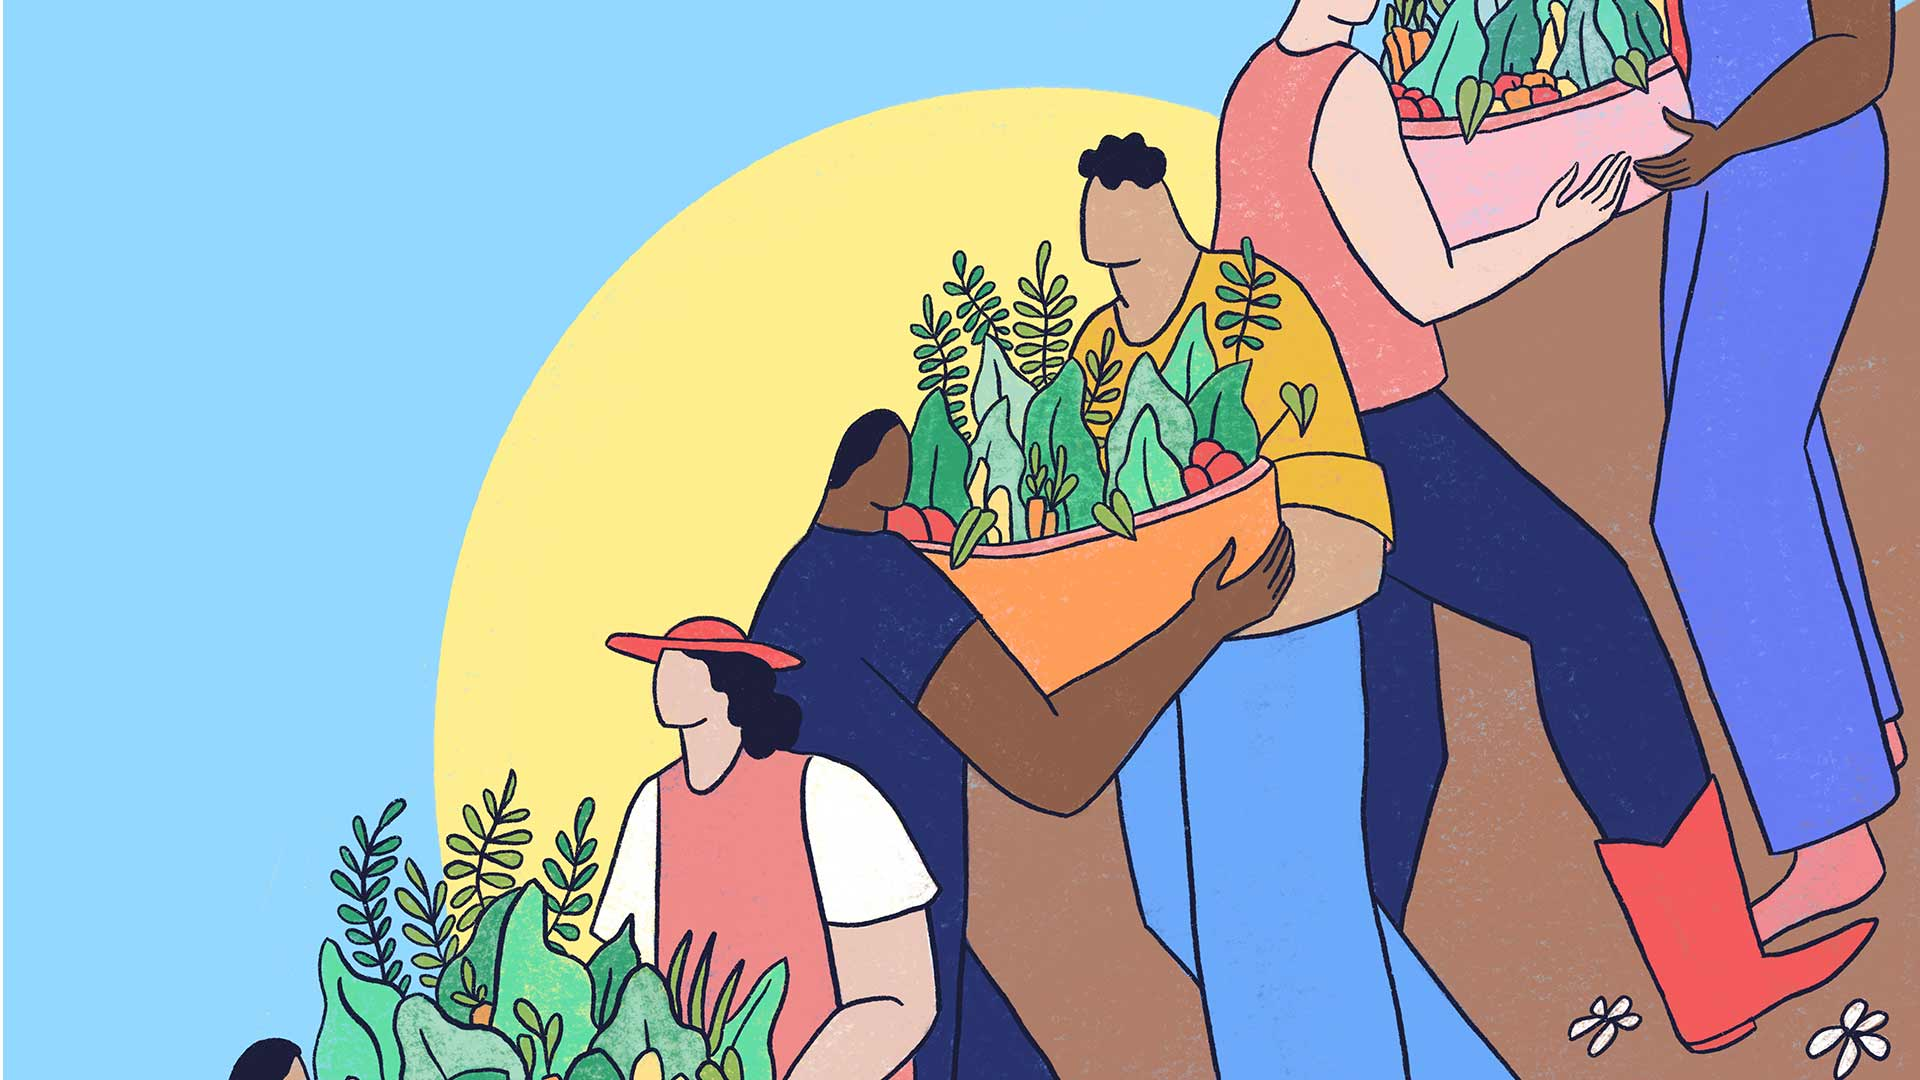 An illustration of farmers handing baskets of fruits and veggies to one another.